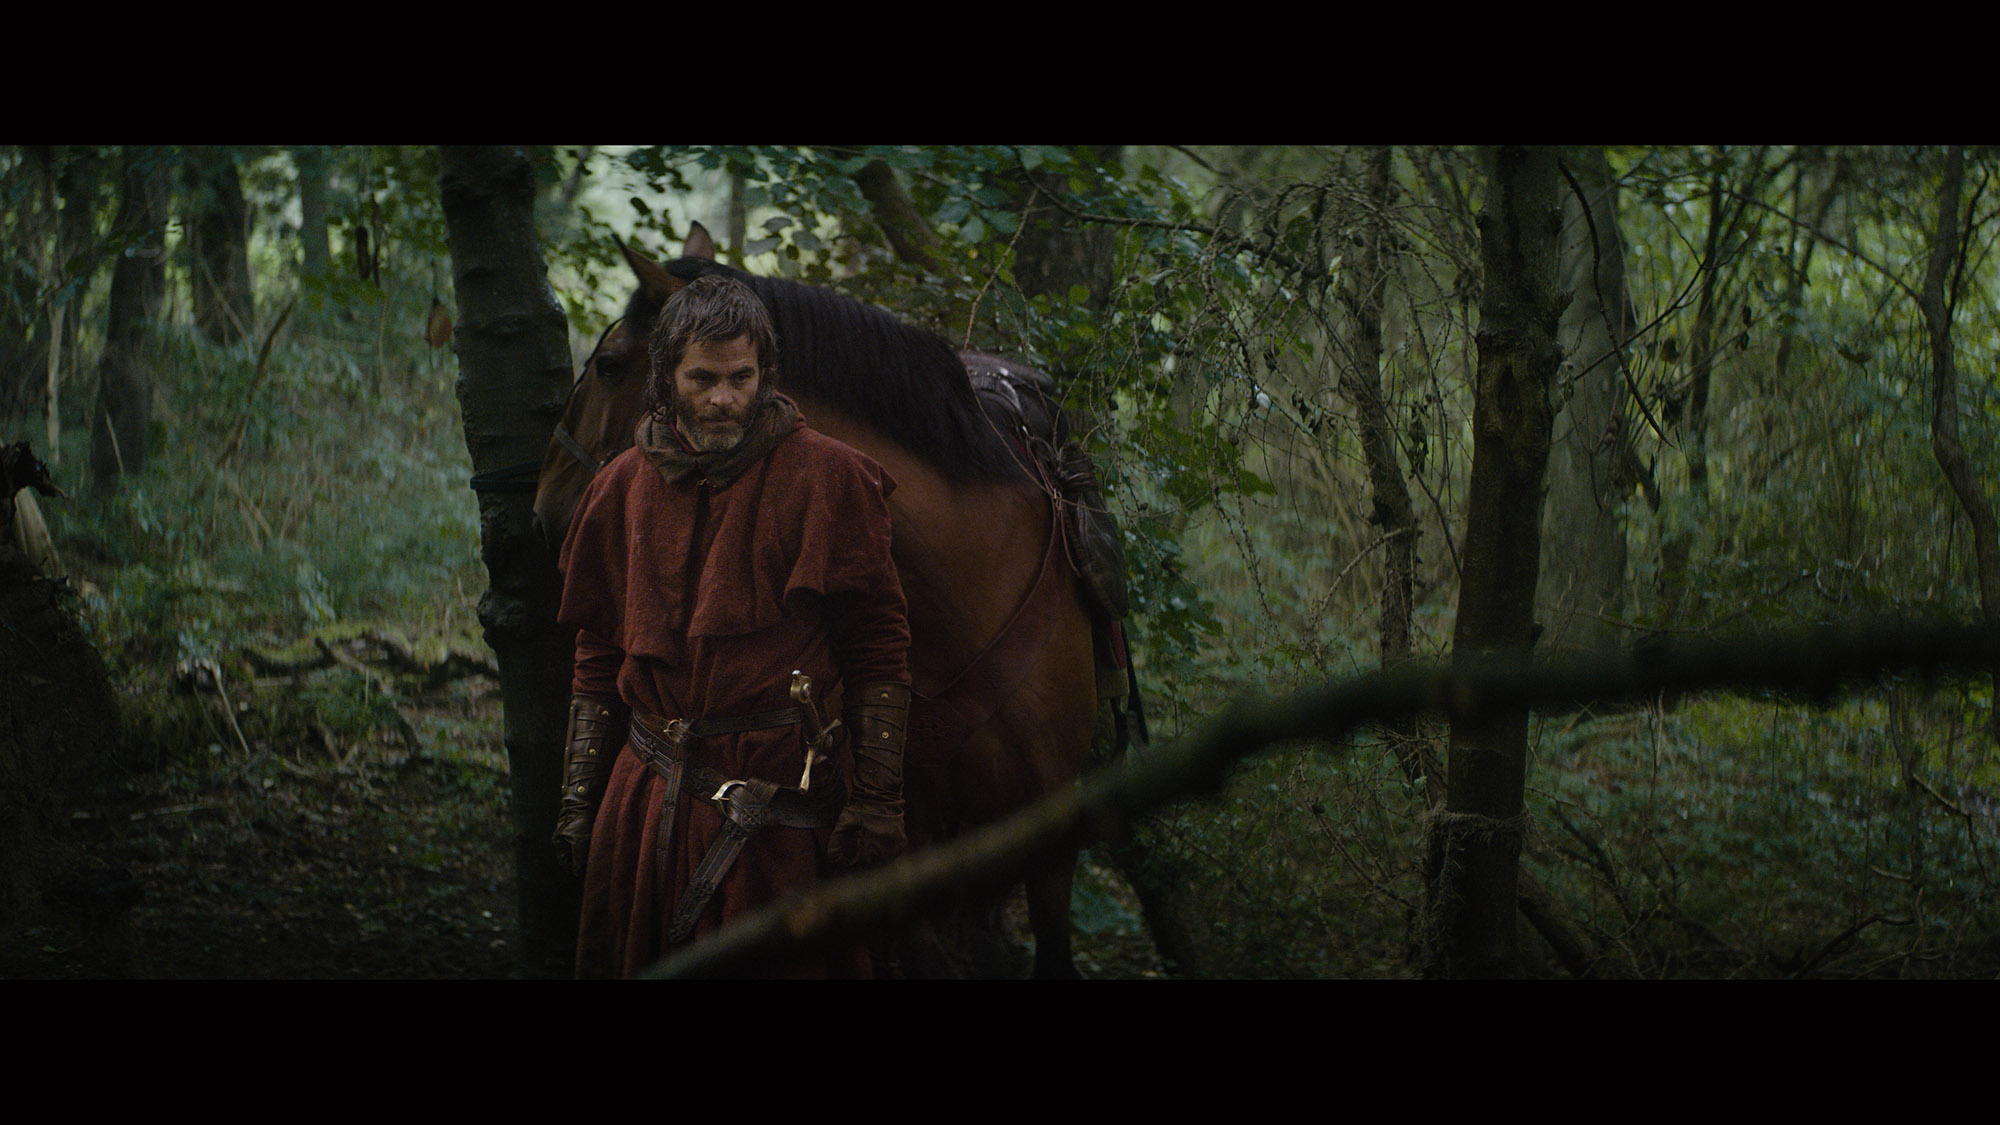 'Outlaw King' tells the true story of Scottish independence. (Netflix)